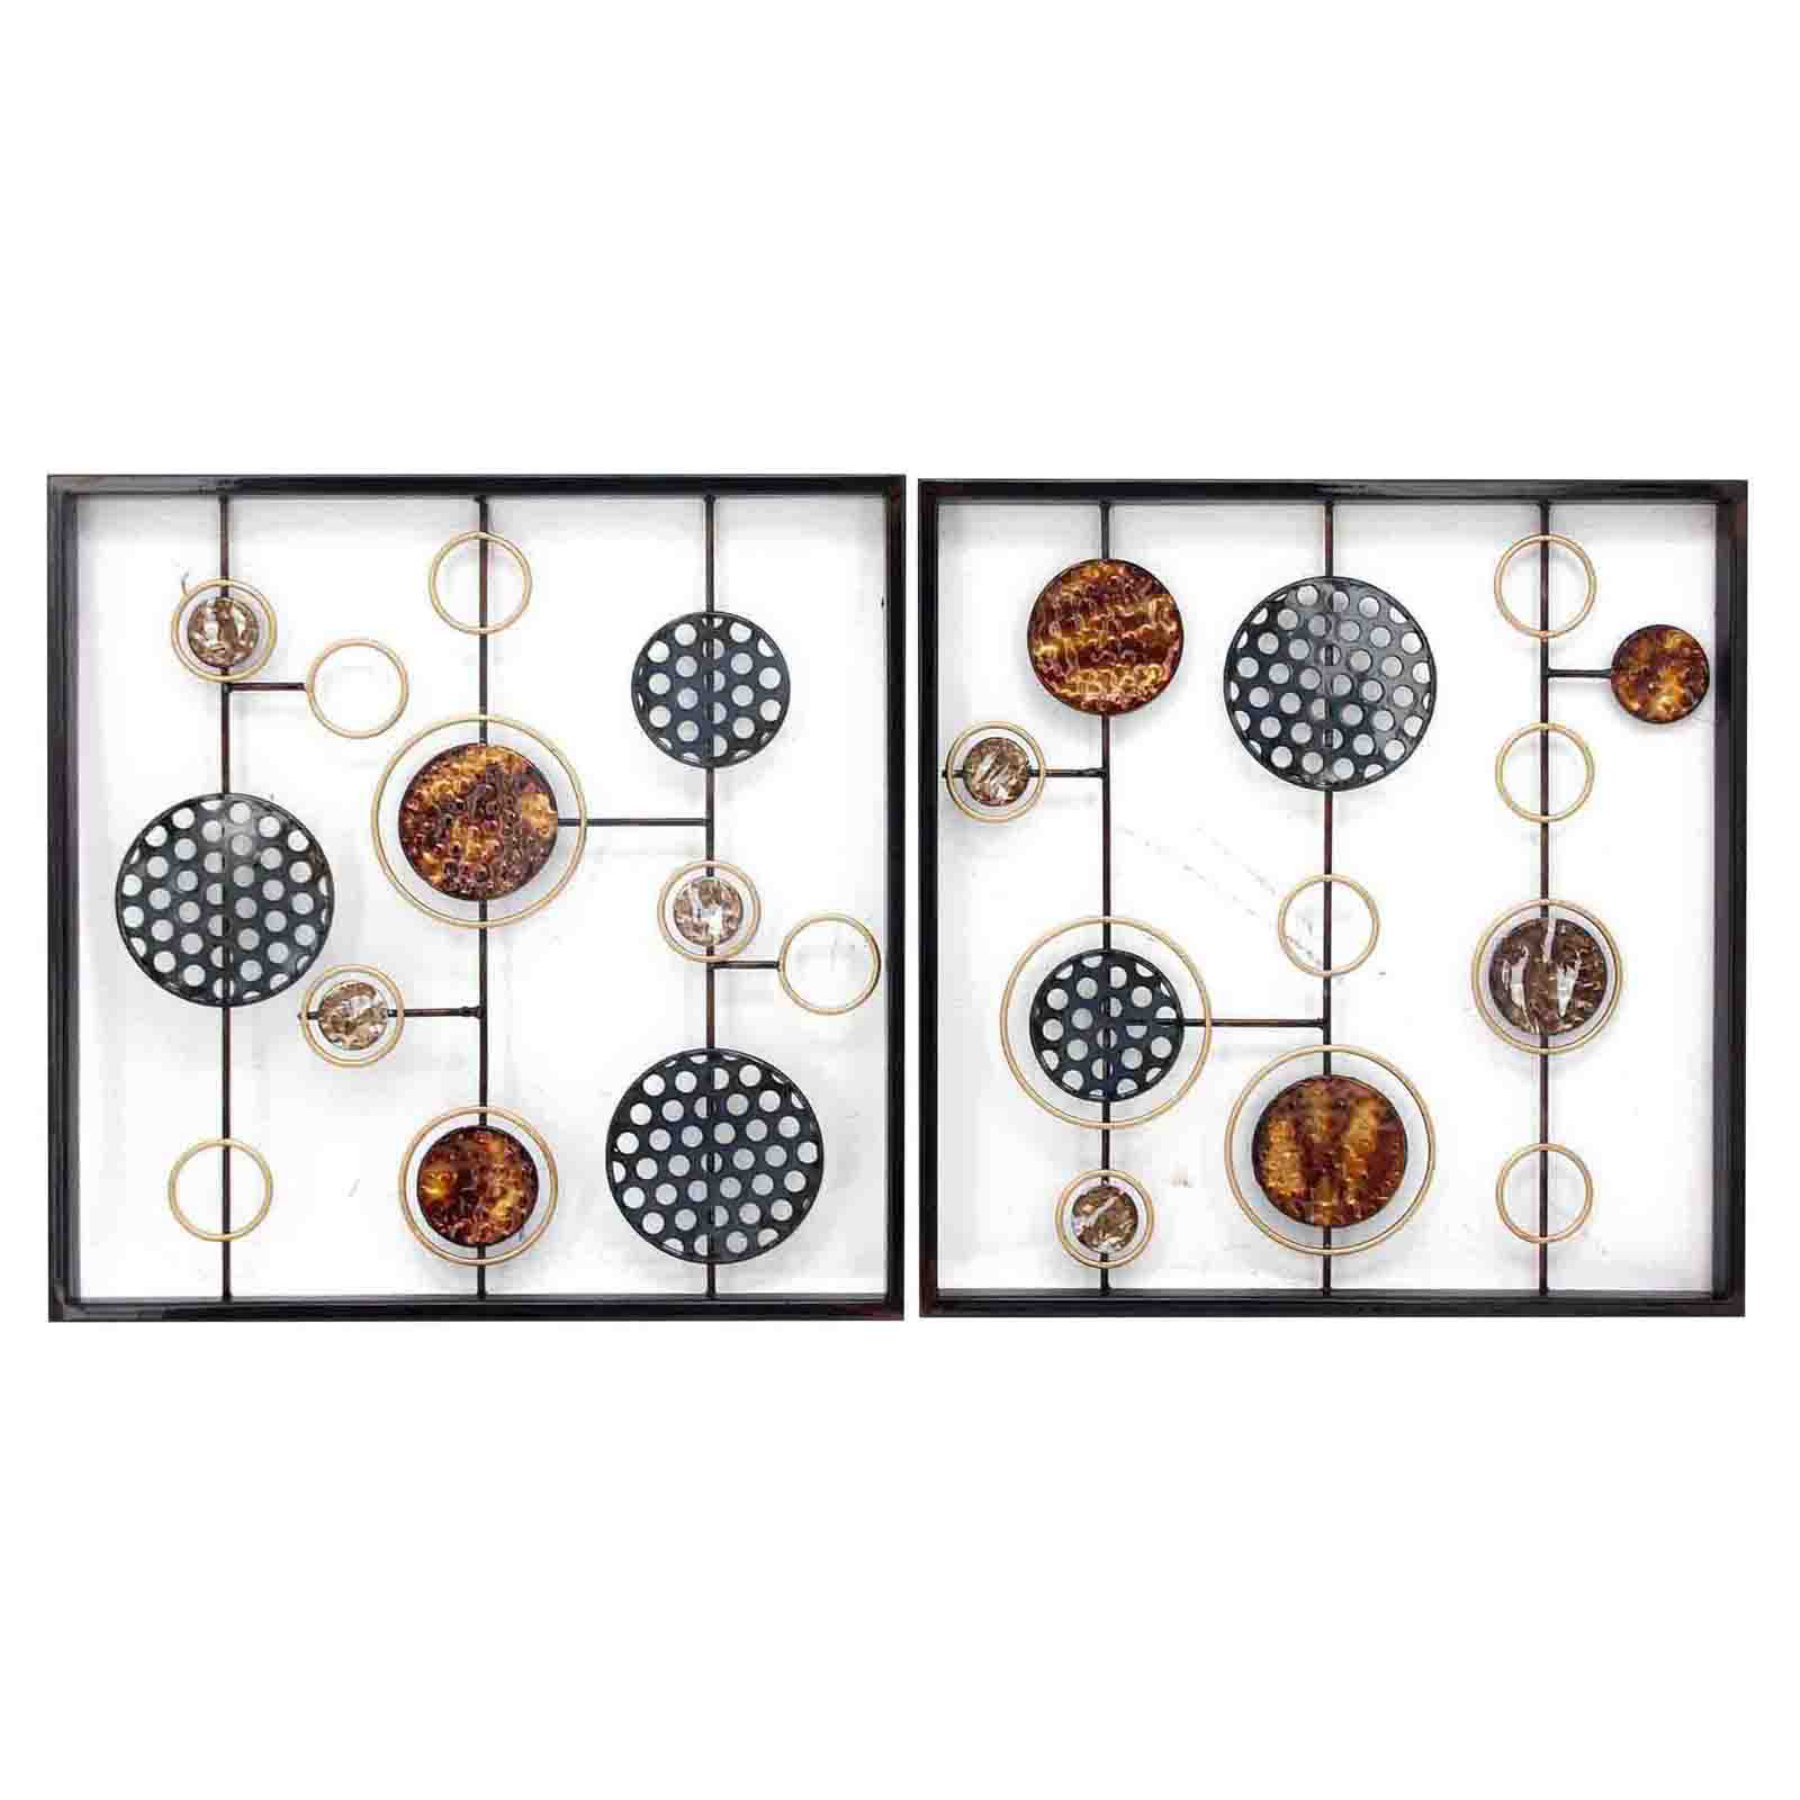 Stylecraft Cosmic Orientation Ii Wall Sculptures – Set Of 2 Throughout Panel Wood Wall Decor Sets (set Of 2) (View 4 of 30)